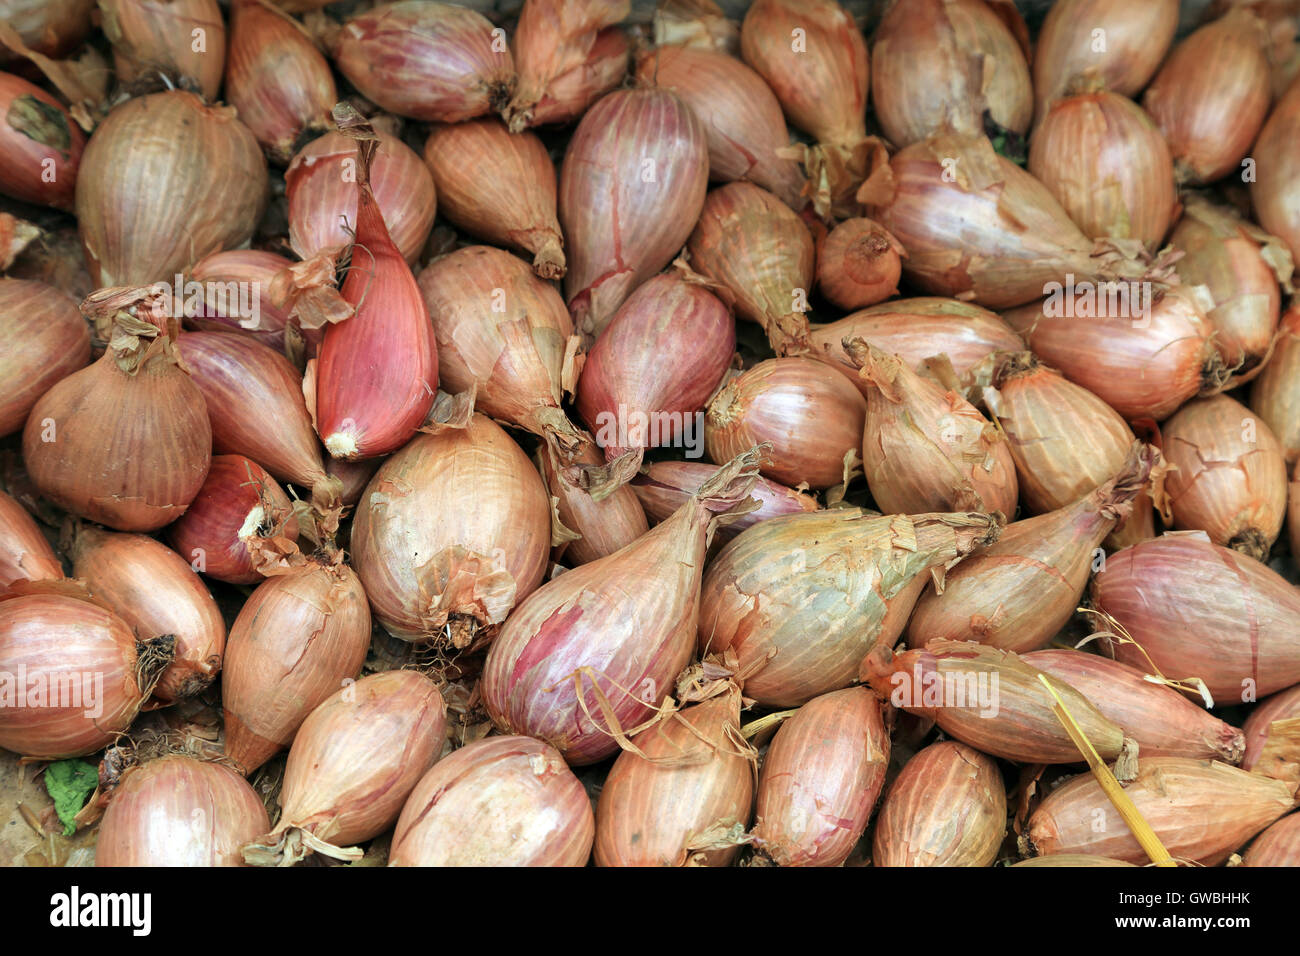 Shallots on stall in market at Place d'Eglise, Larmor-Baden, Morbihan, Brittany, France - Stock Image